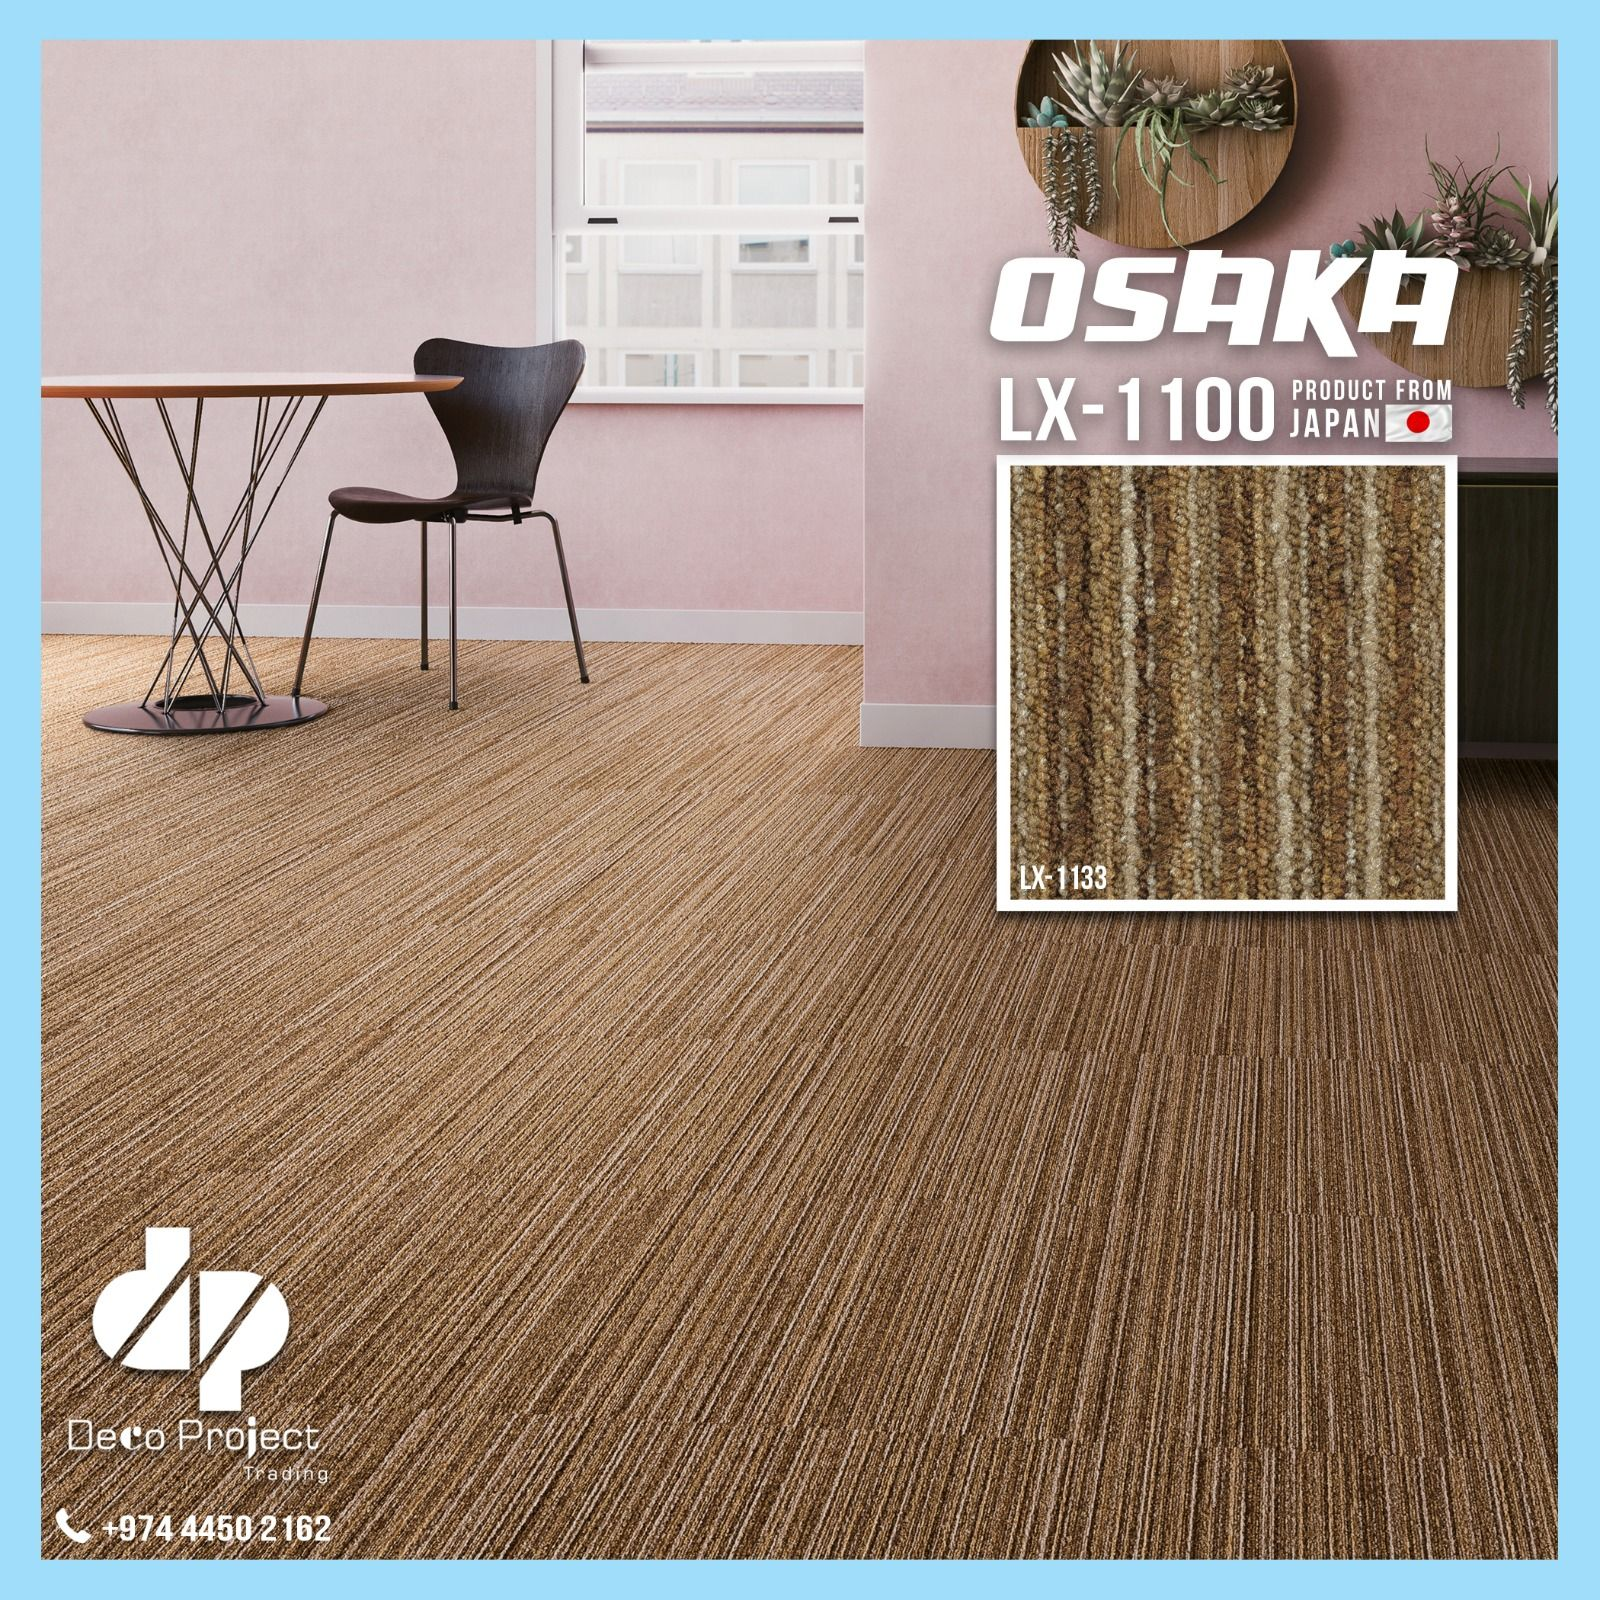 Our Carpet Floor Materials Are An Excellent And Always Met The